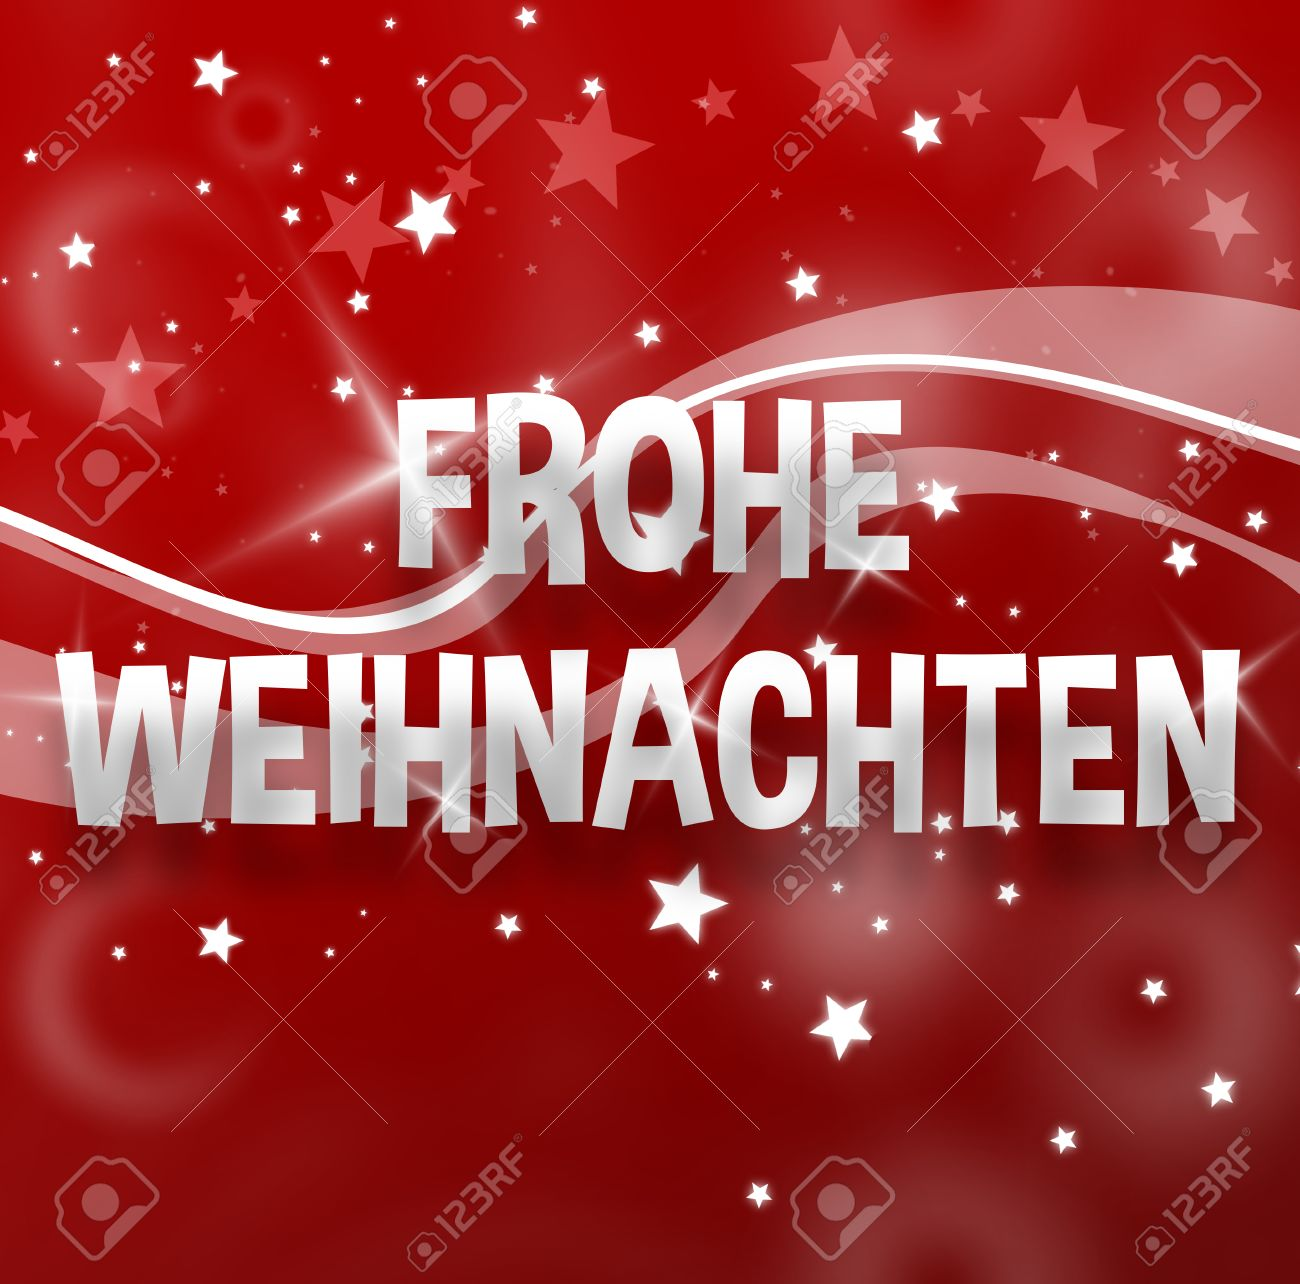 Merry Christmas German Language Stock Photo, Picture And Royalty ...